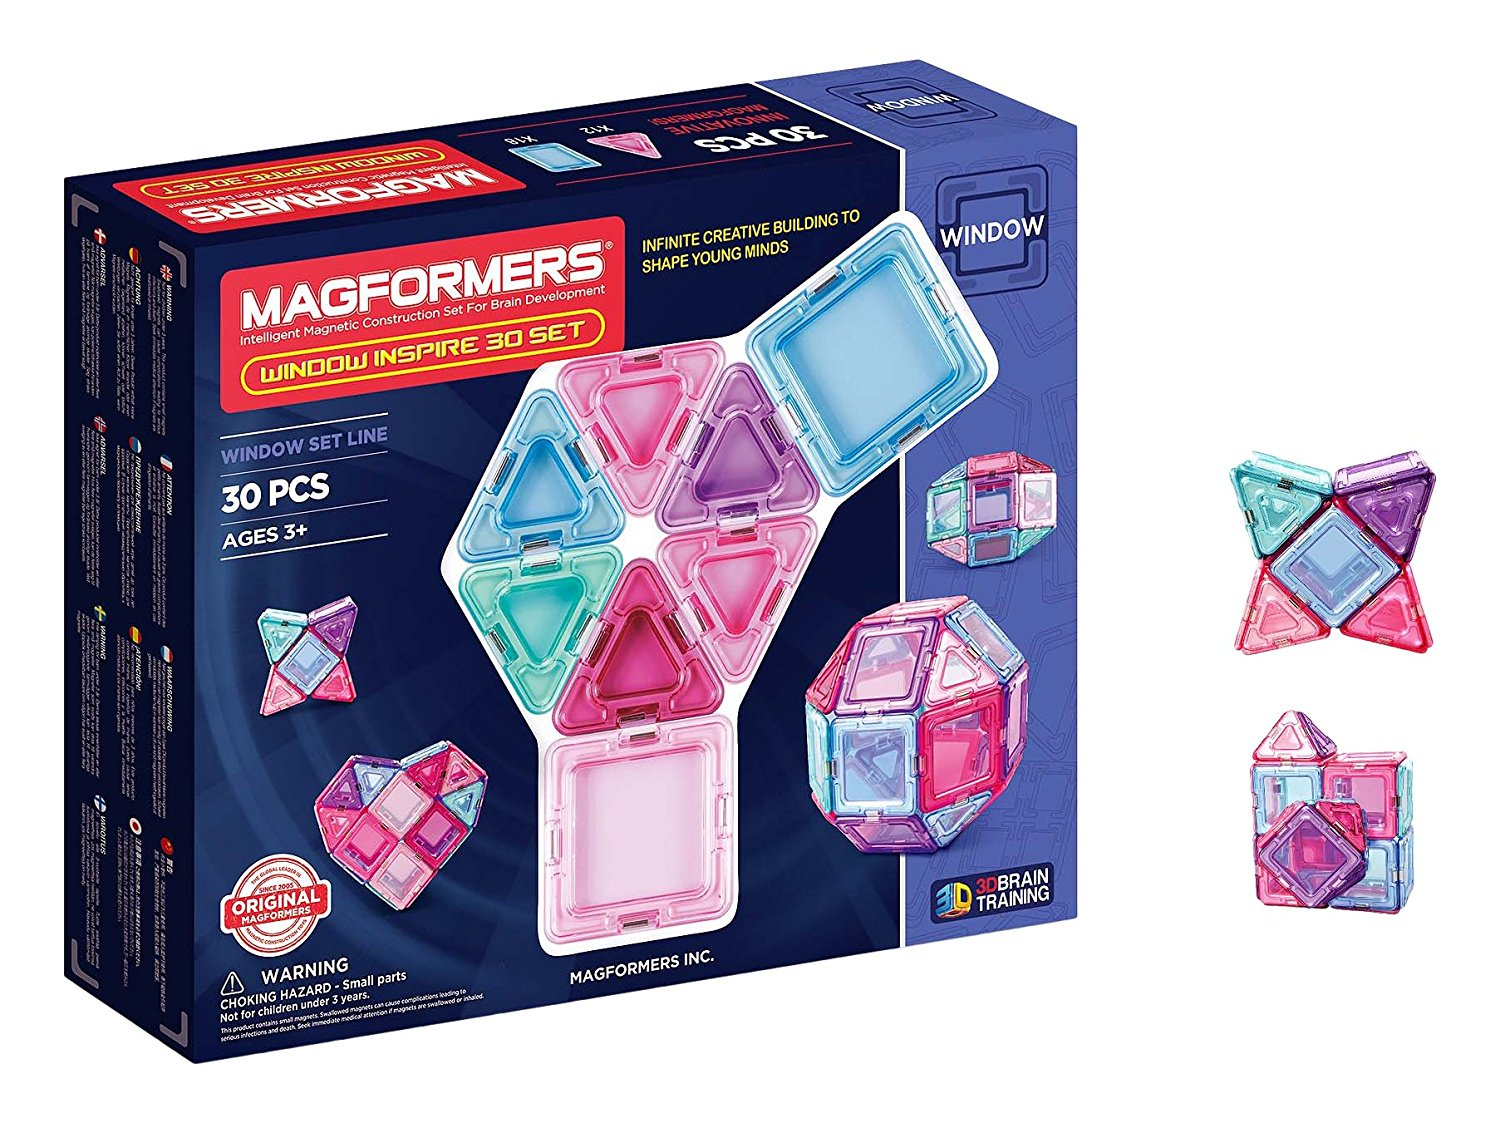 Magformers Window Inspire 30 set 714004